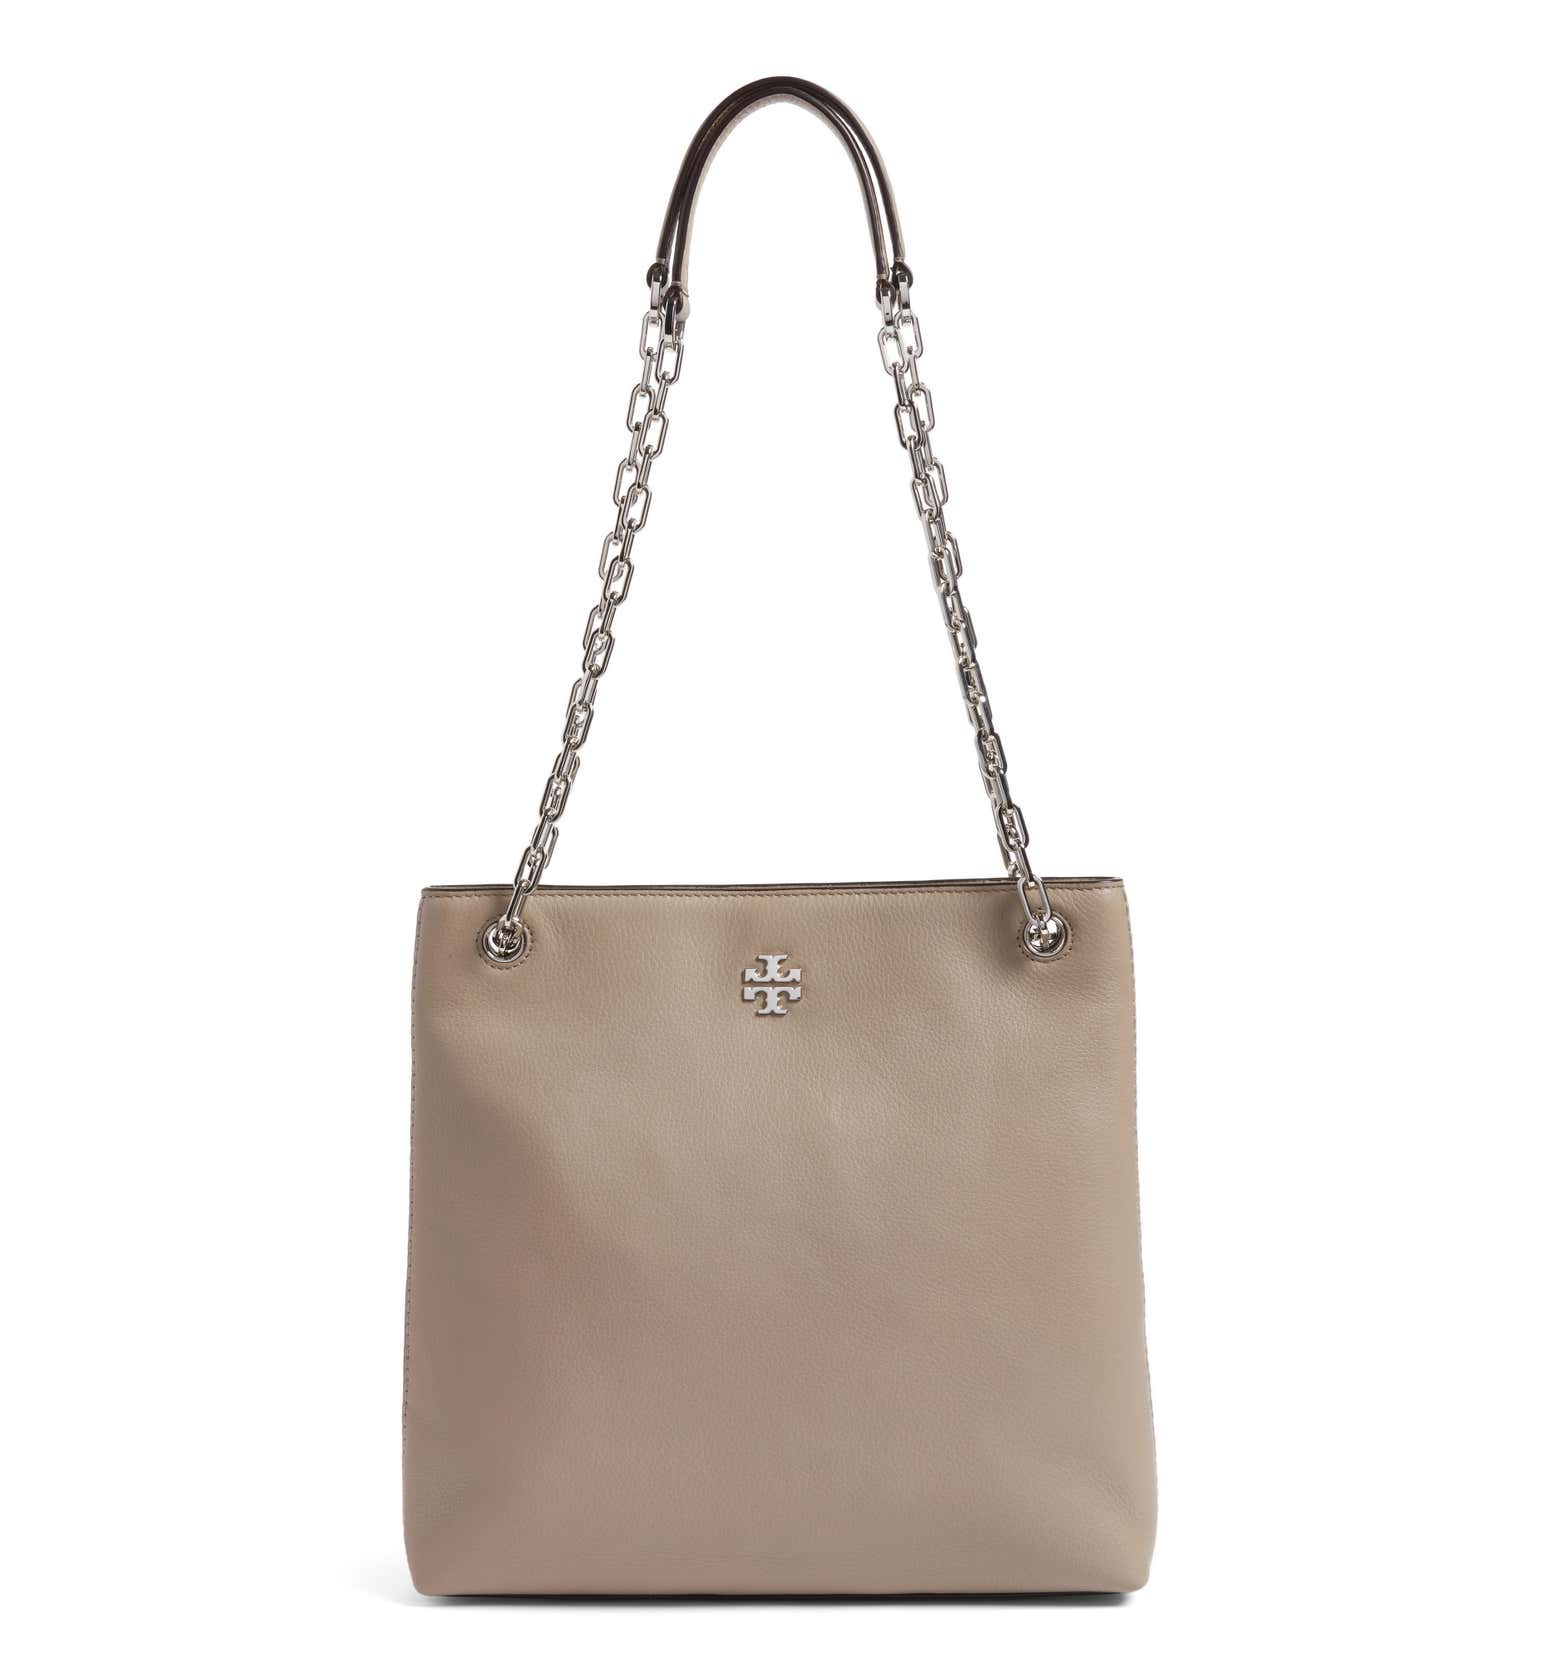 747dd2ff605 HURRY BEFORE ITS GONE: TORY BURCH, REBBECA MINKOFF, KATE SPADE, AND MORE  HANDBAGS ON SALE